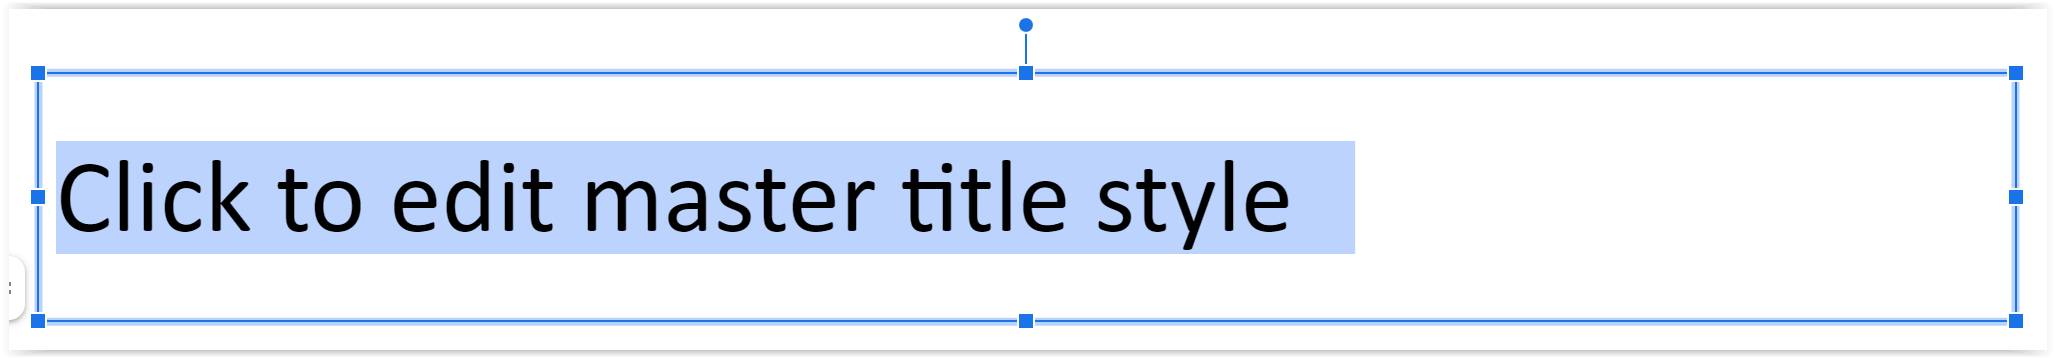 Click to edit master title style image